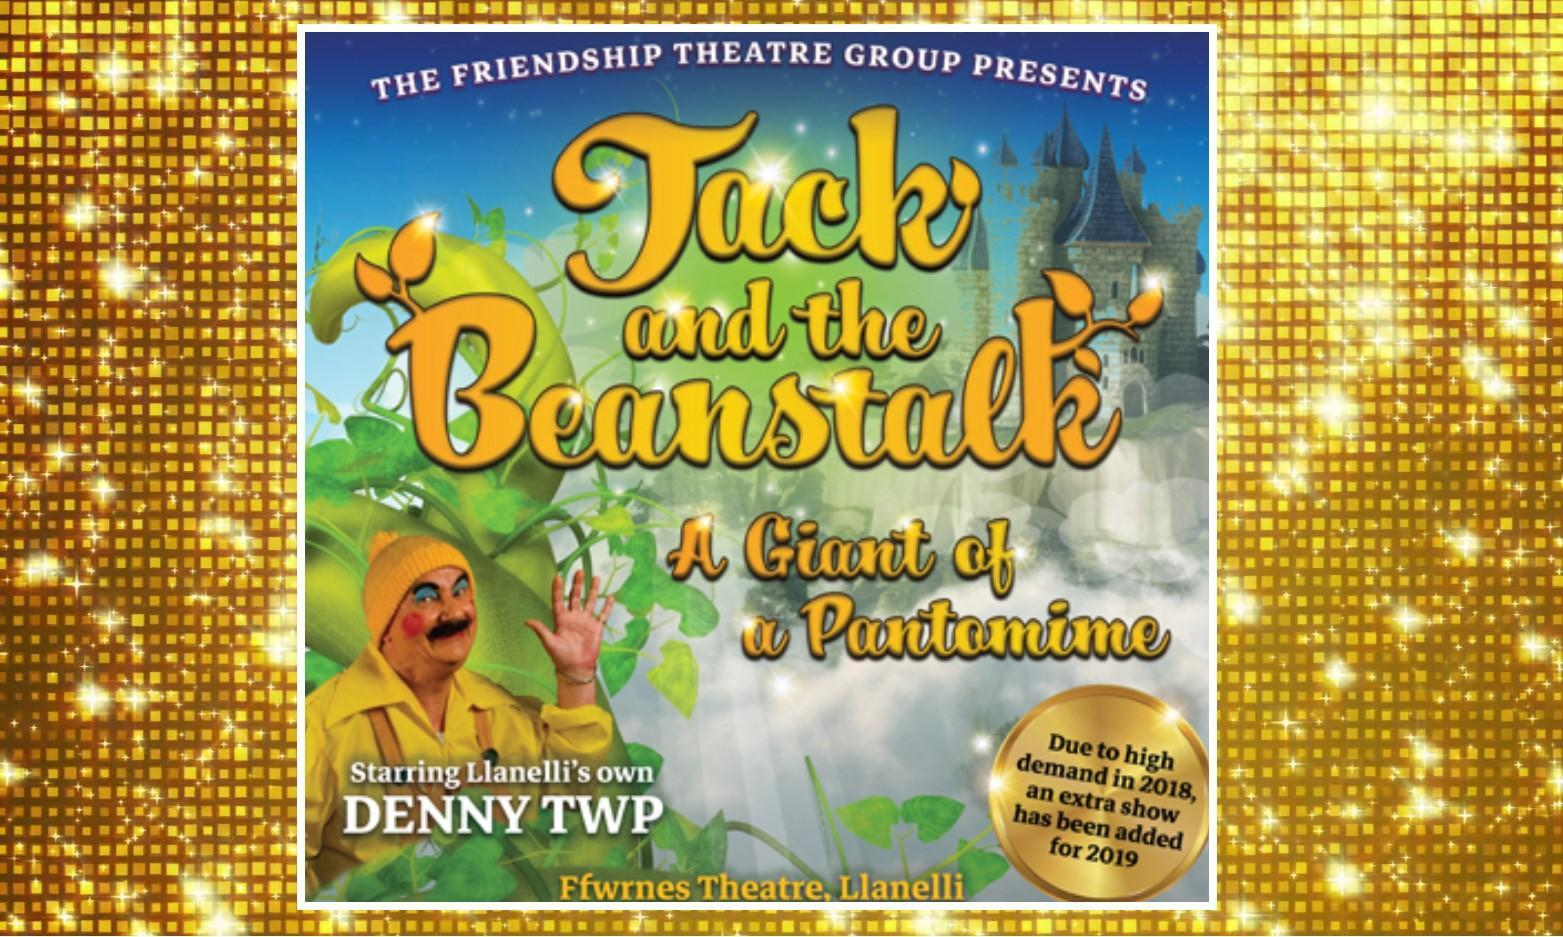 Jack and the Beanstalk Pantomime at Ffwrnes Llanelli